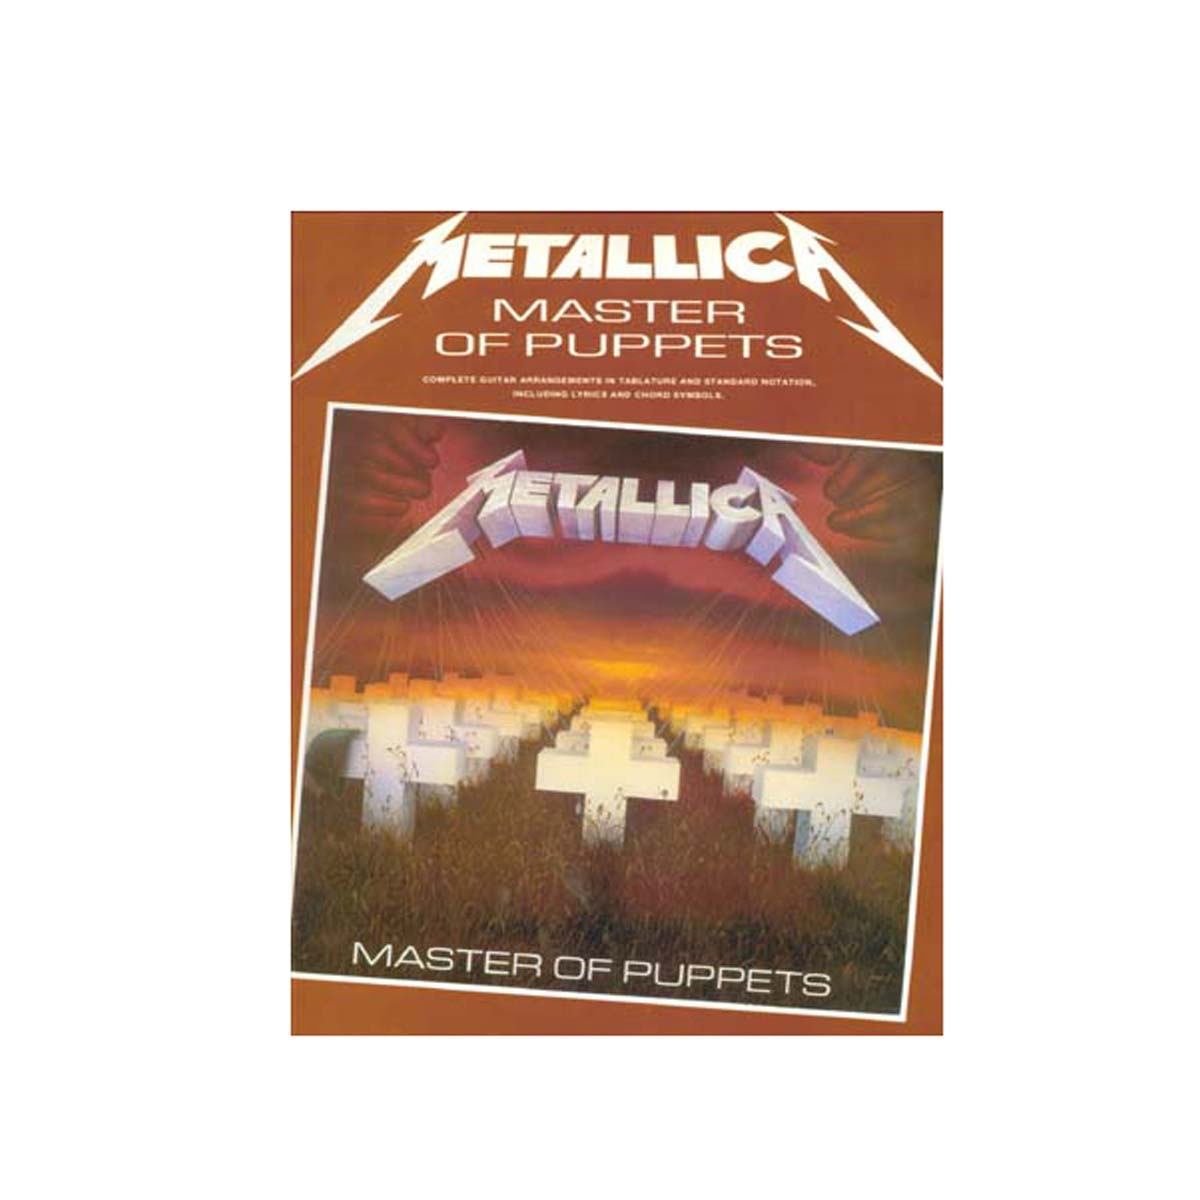 Metallica - Master of puppets guitar tab